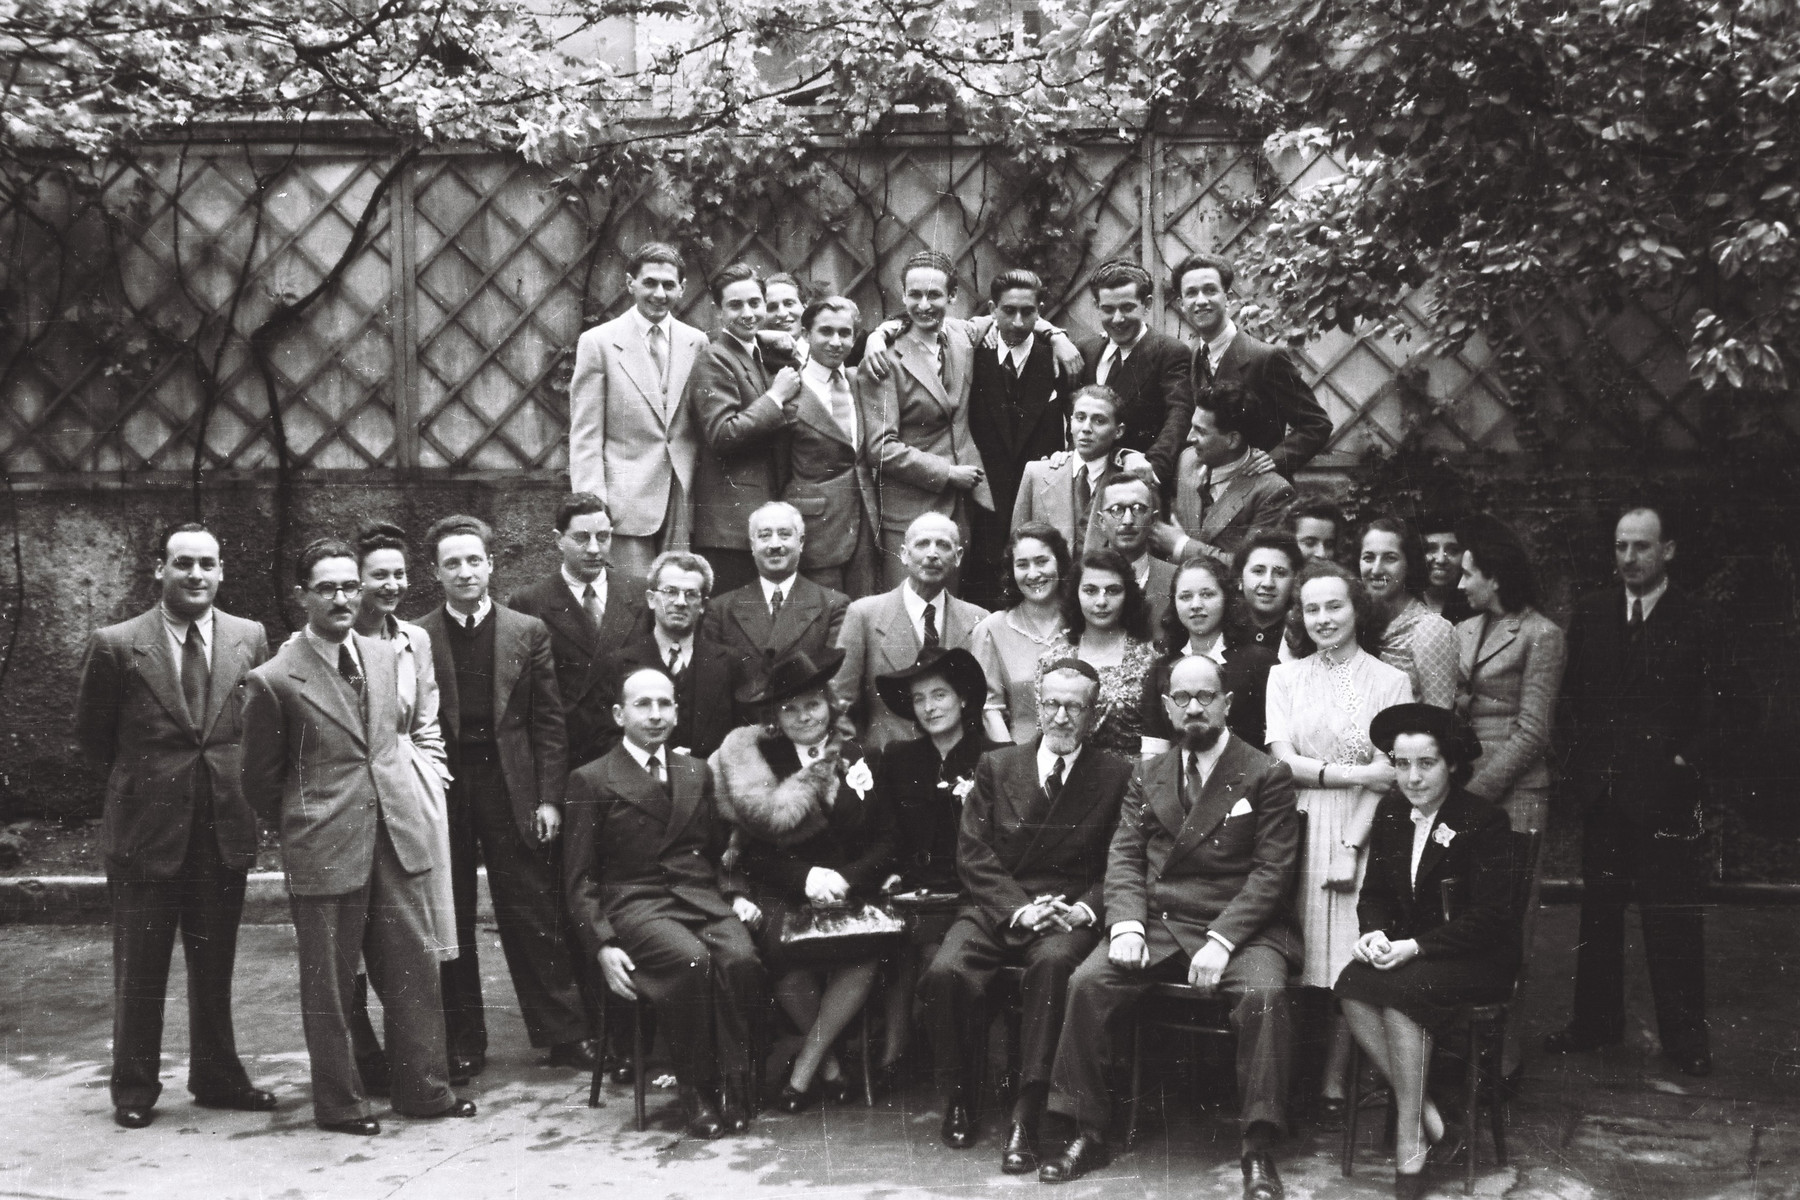 Faculty and students pose for a portrait at the conclusion of the graduation exercises at the Jewish high school in Milan.